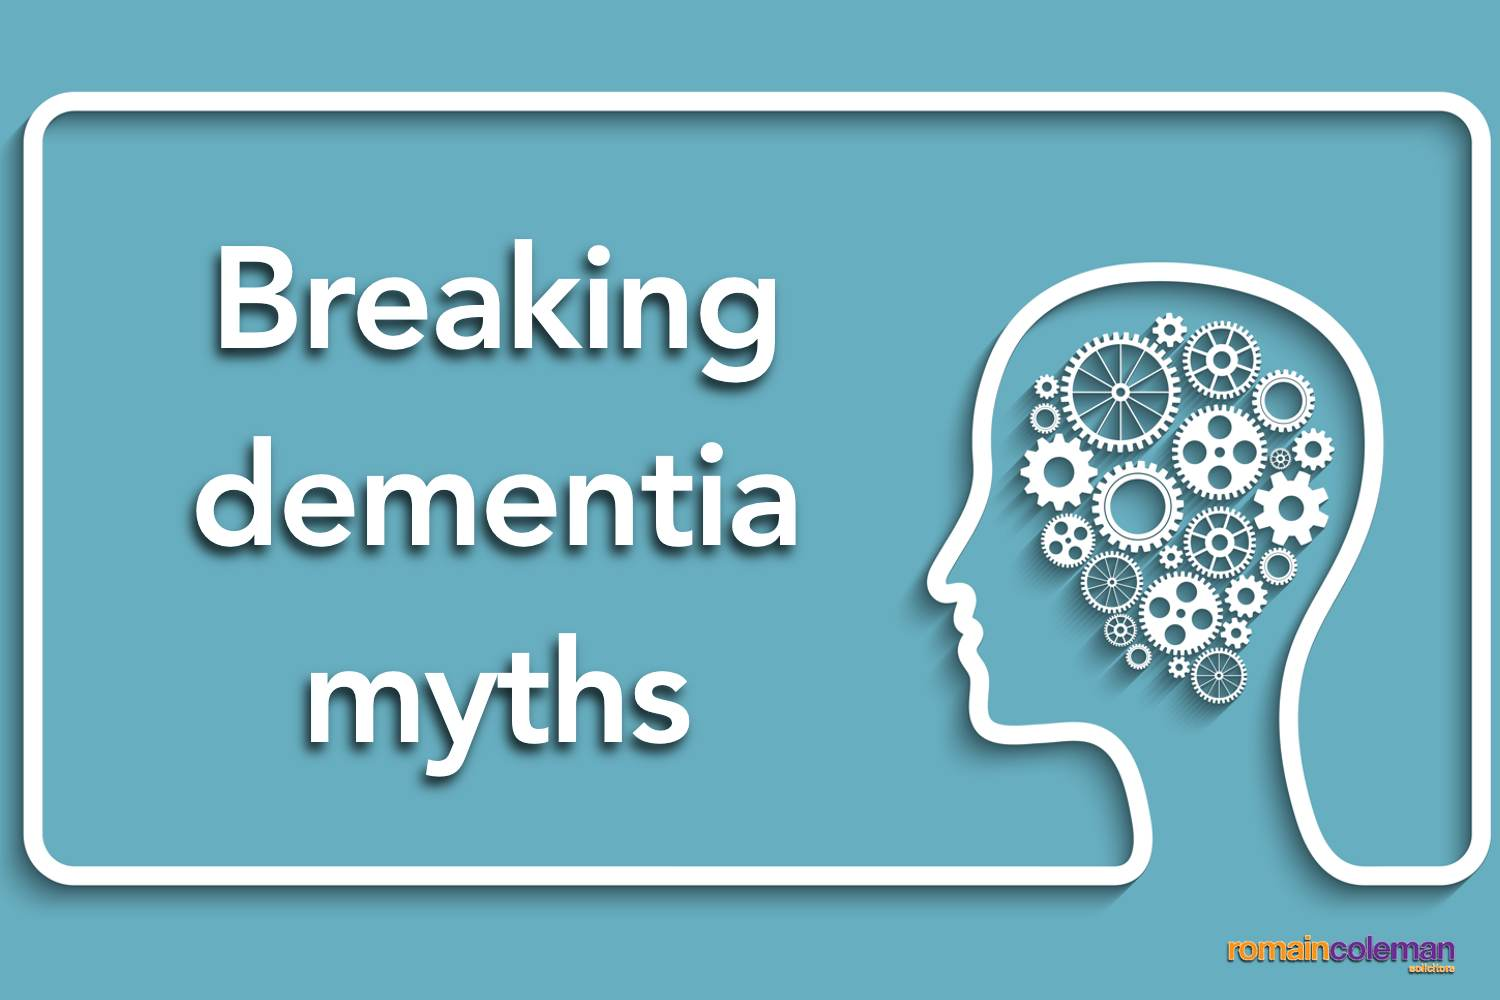 Breaking dementia myths